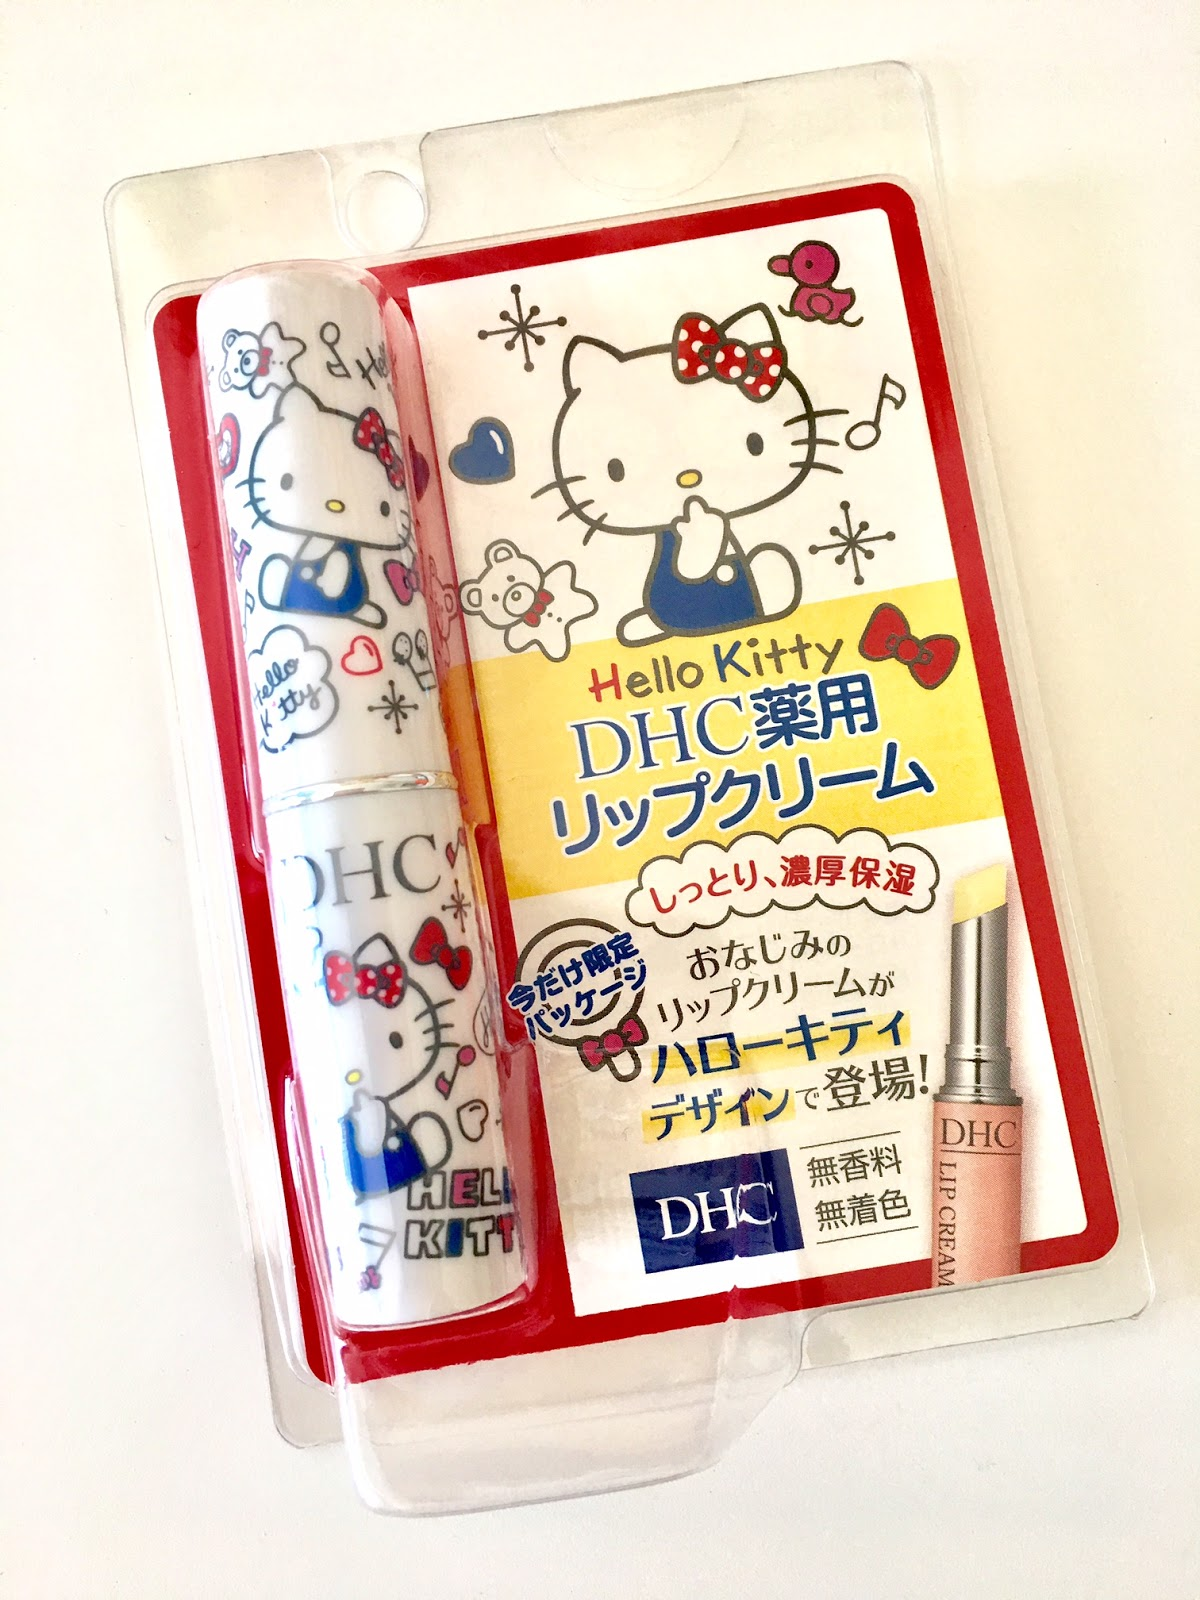 DHC Japanese Beauty Product